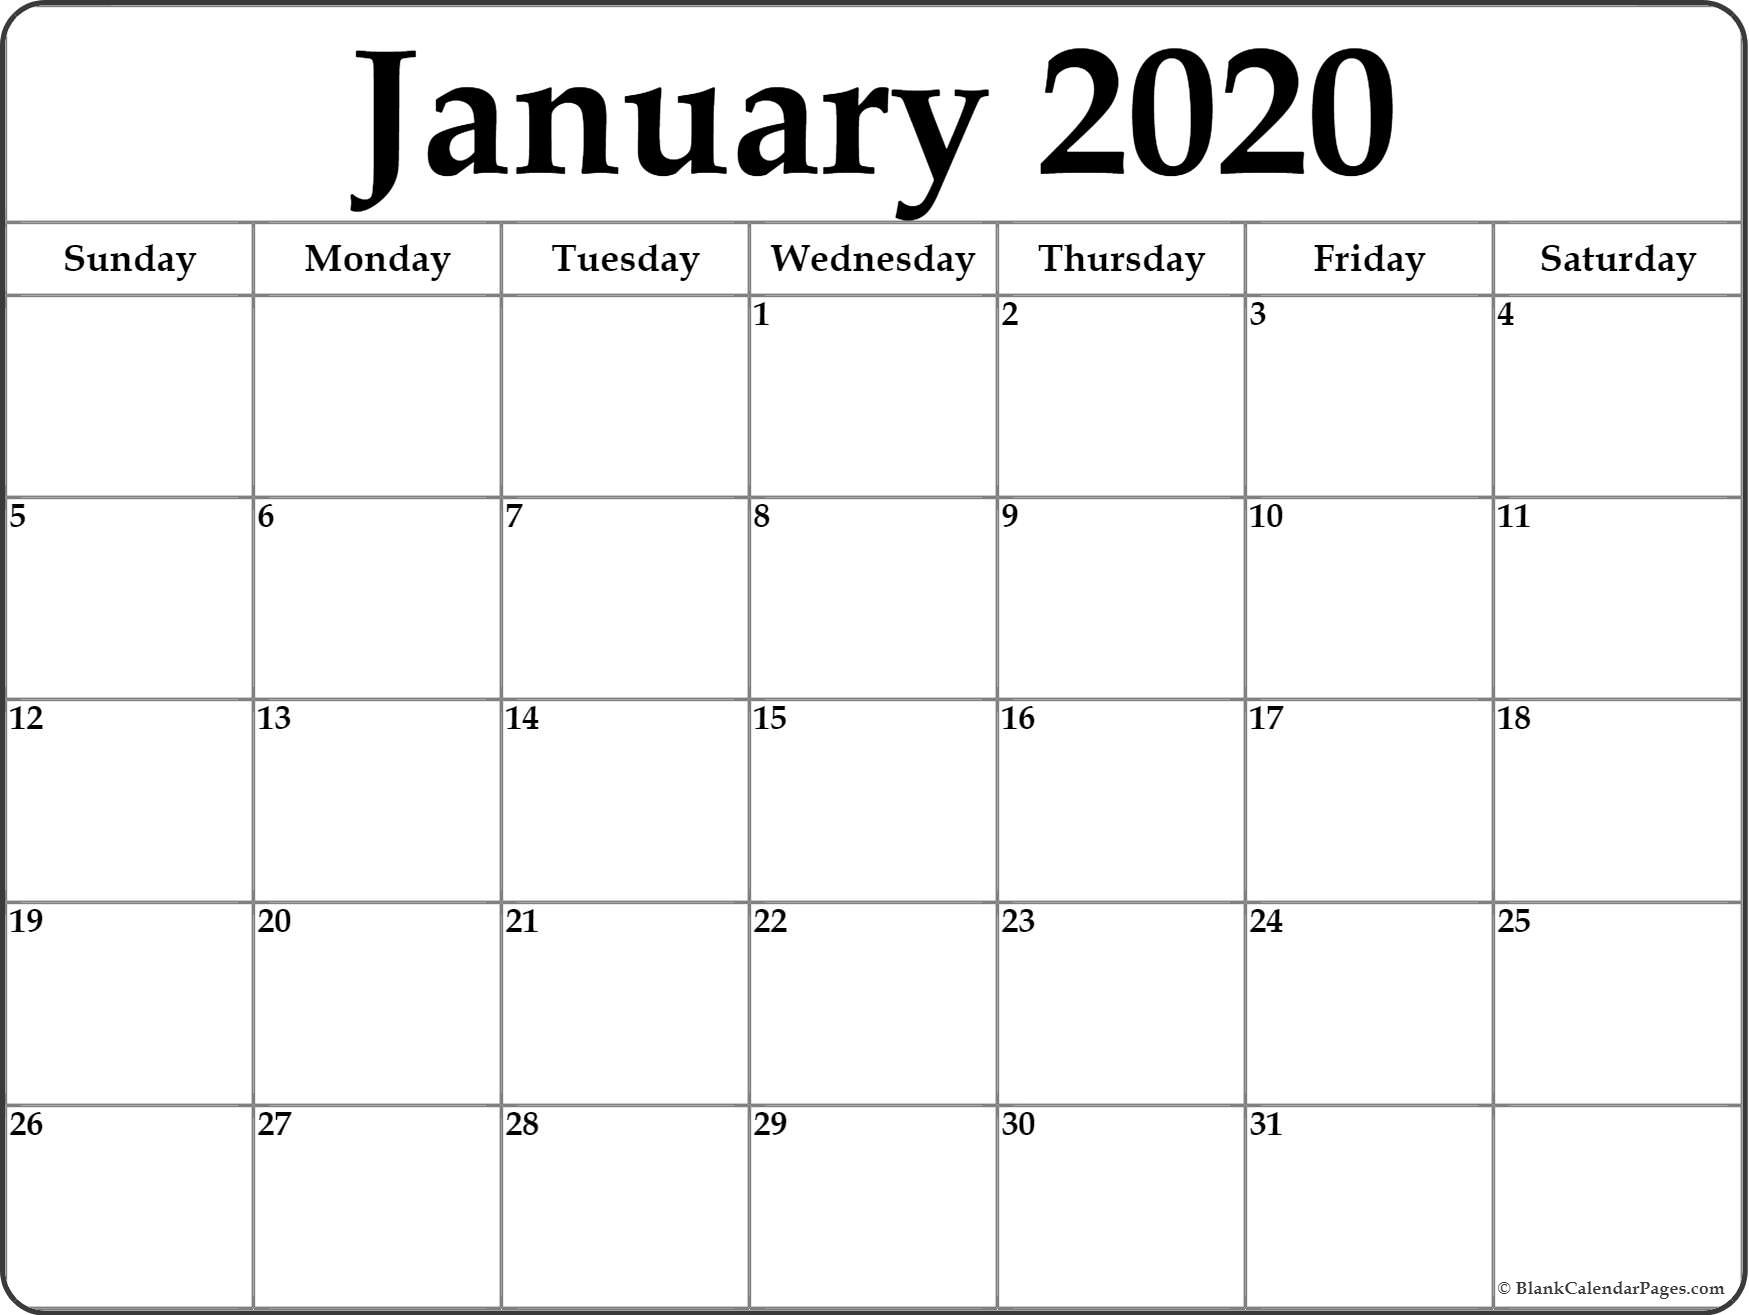 January 2020 Calendar | Free Printable Monthly Calendars-Blank Calendar 2020 To Fill In